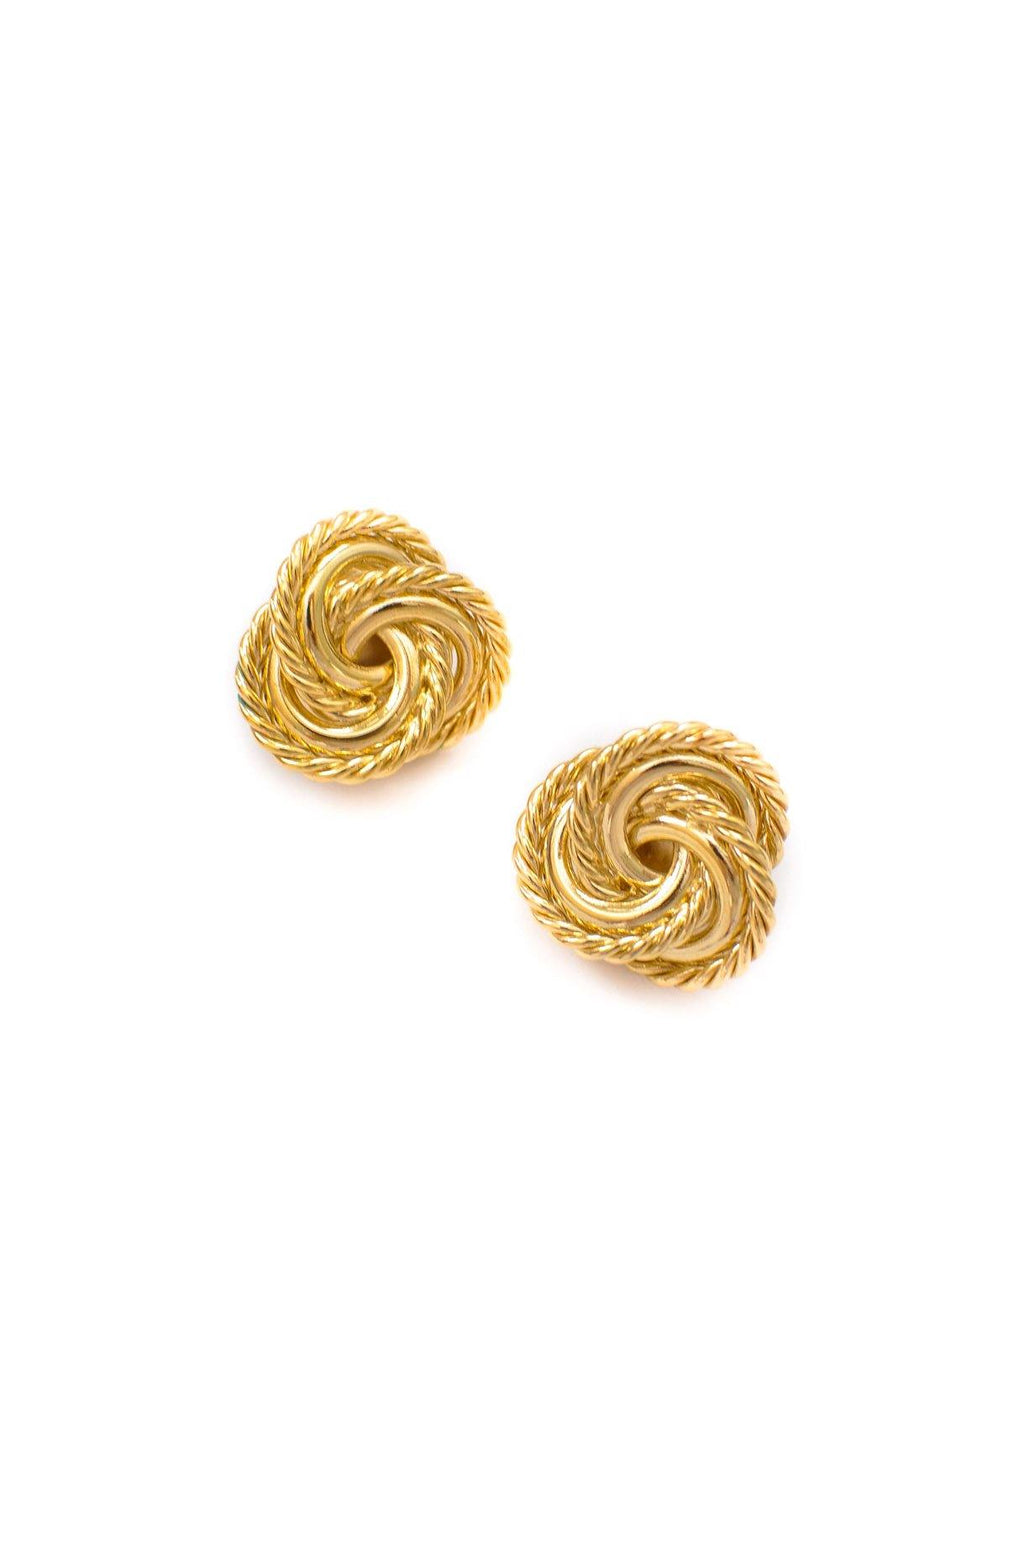 Givenchy Twisted Rope Clip on Earrings